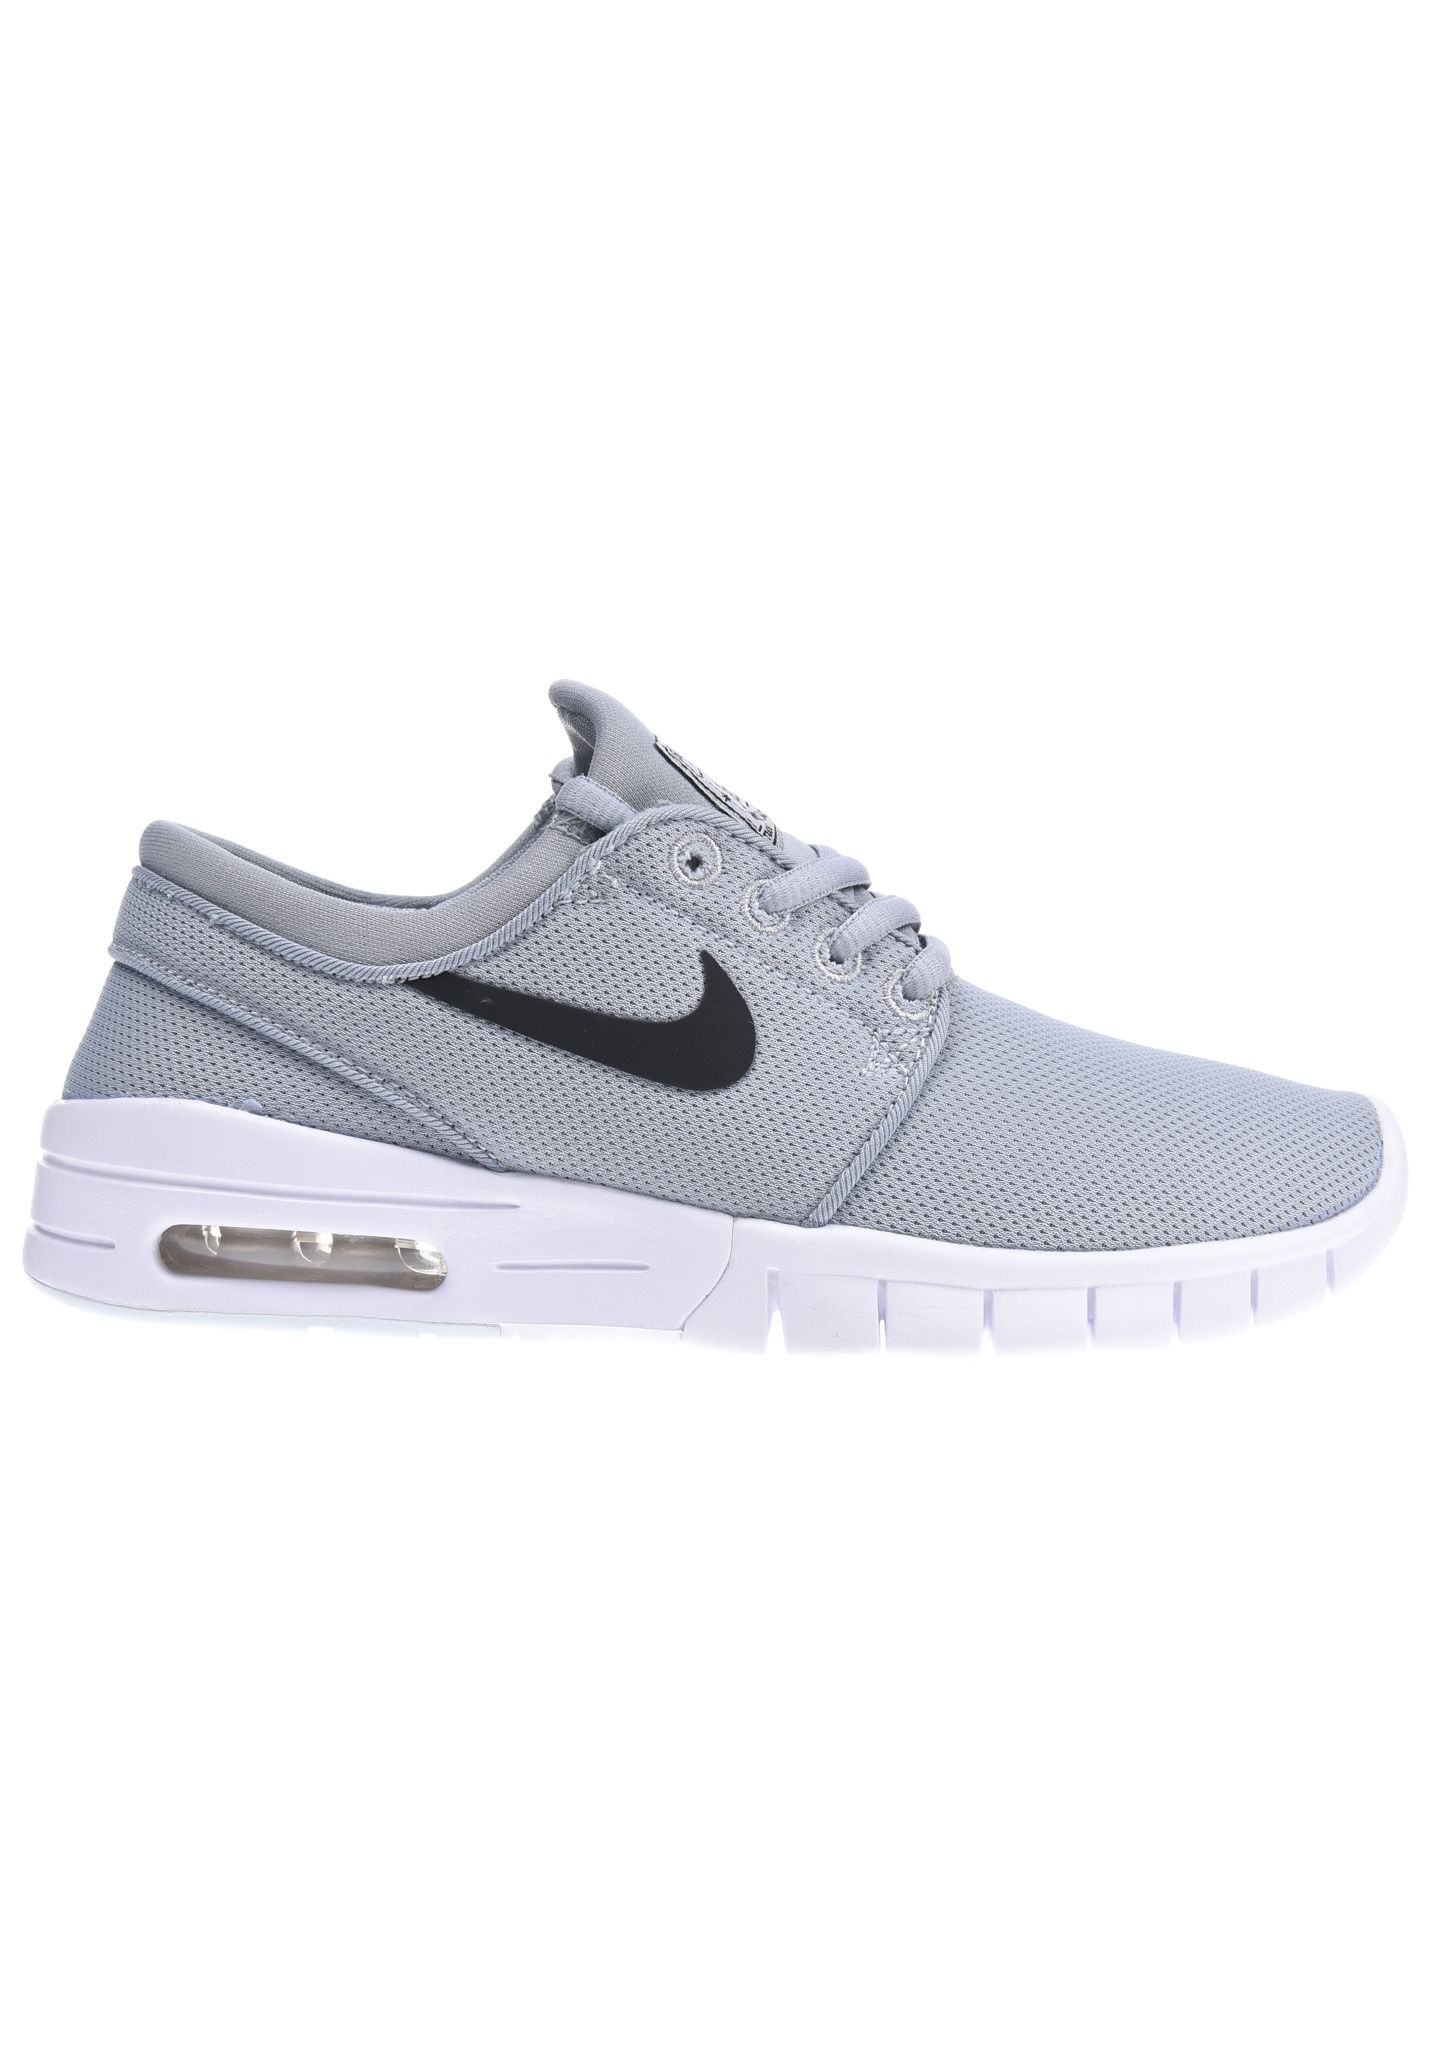 buy popular abaf3 9f3d8 NIKE SB Stefan Janoski Max - Sneakers for Kids Boys - Grey - Planet Sports